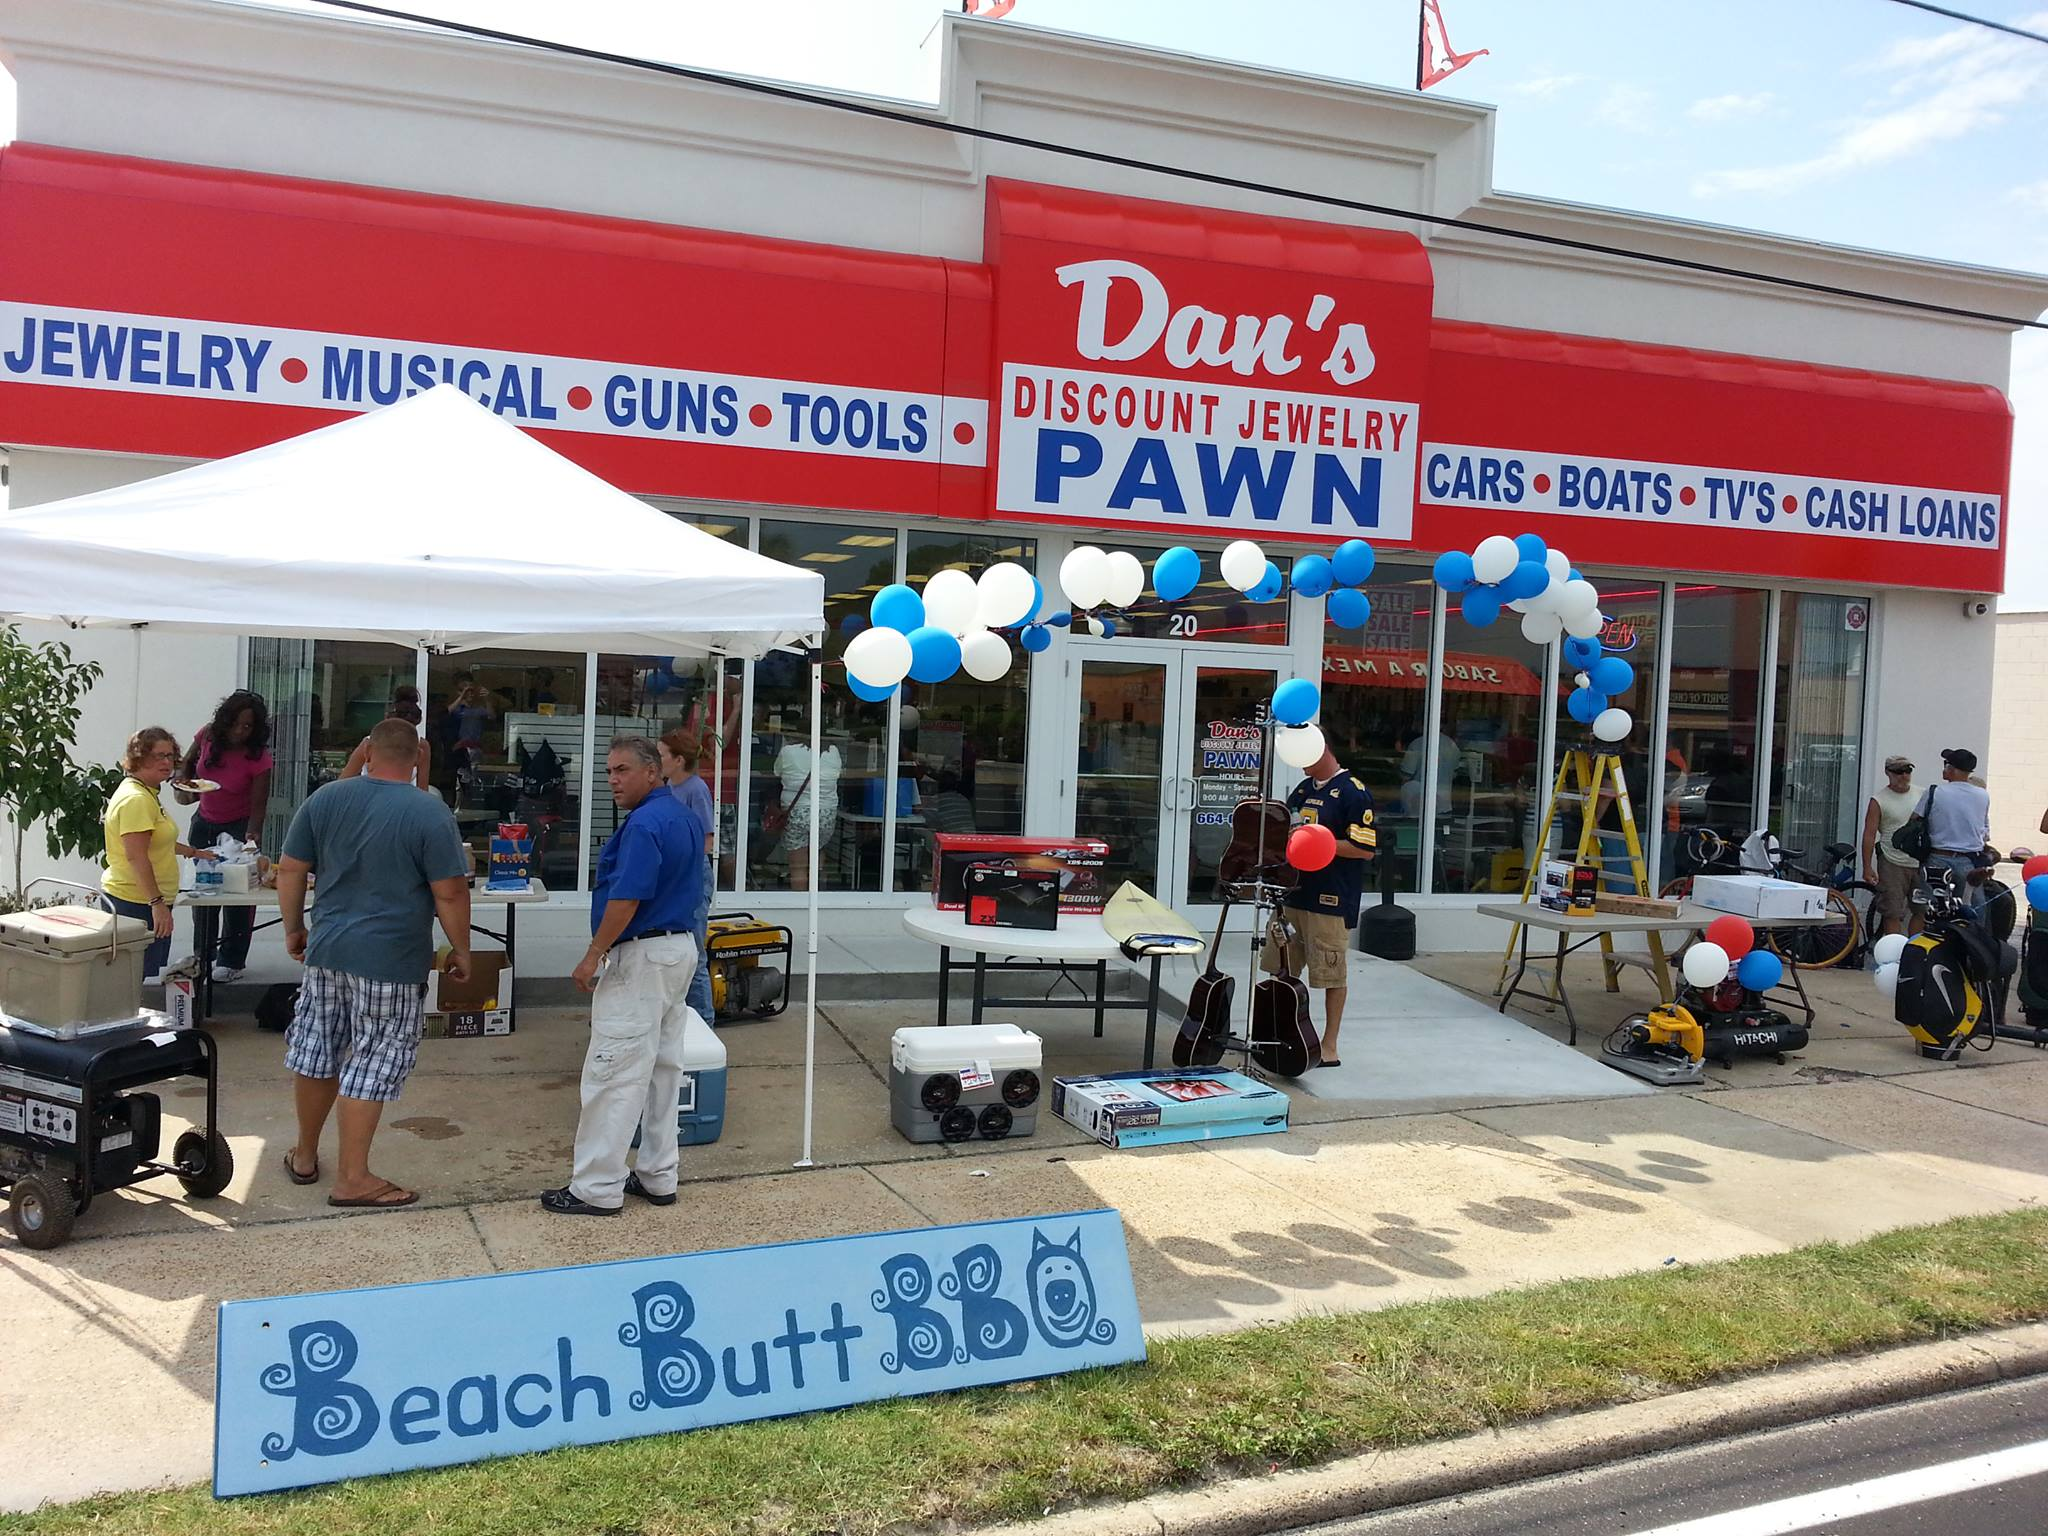 Dan s discount jewelry pawn gi save for Alan s jewelry pawn